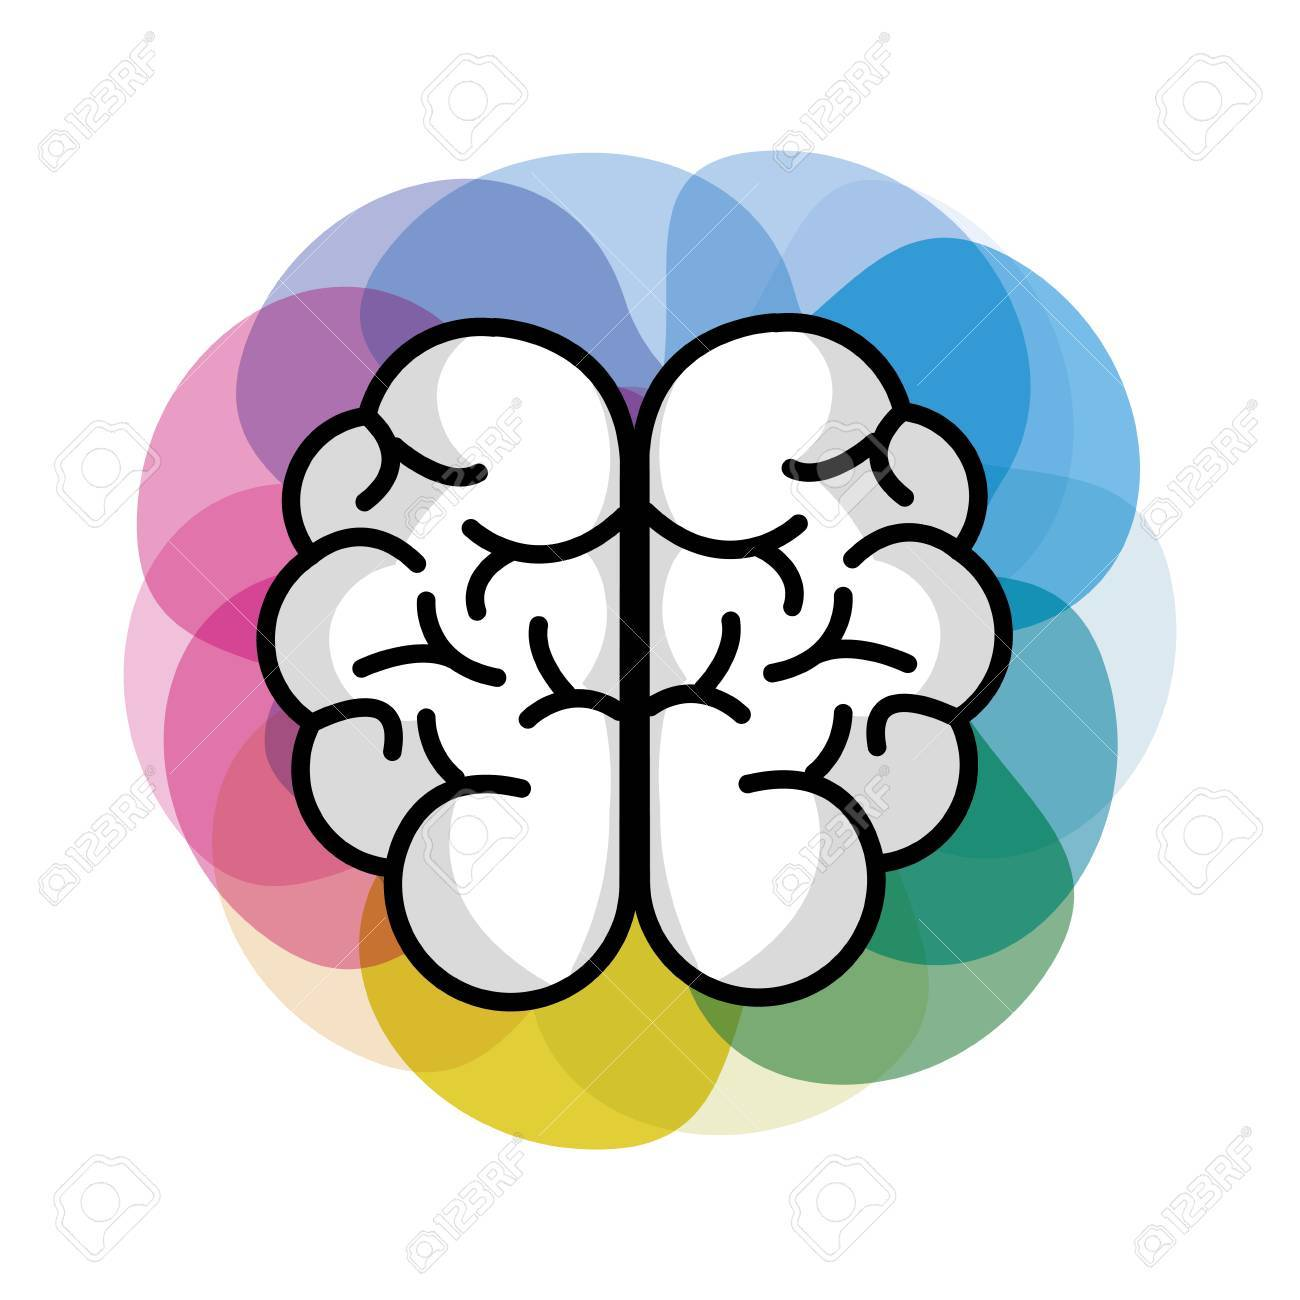 Mental Health Brain Art Royalty Free Cliparts Vectors And Stock Illustration Image 77229111